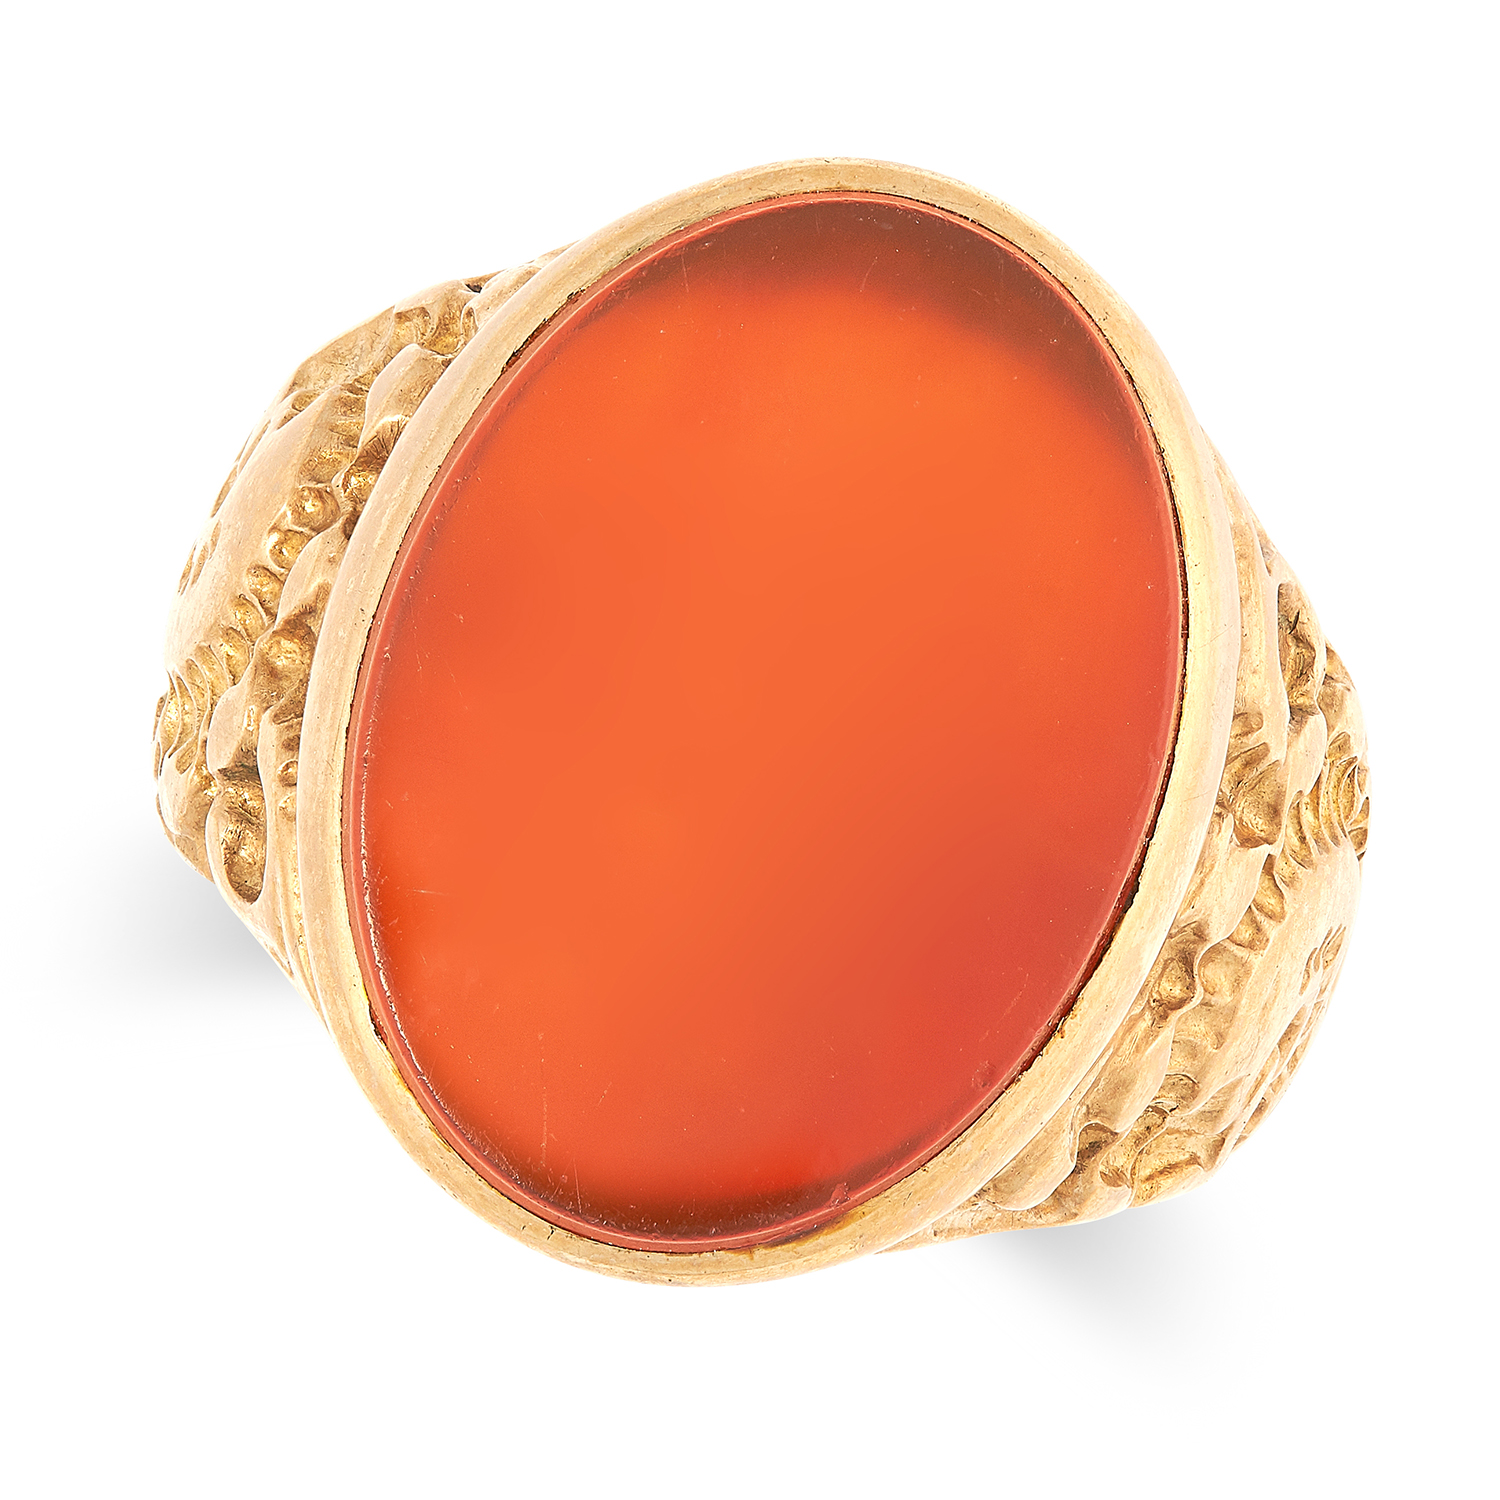 Los 28 - A GENTLEMAN'S CARNELIAN SIGNET RING set with a polished piece of carnelian, size Q / 8.5, 8.2g.